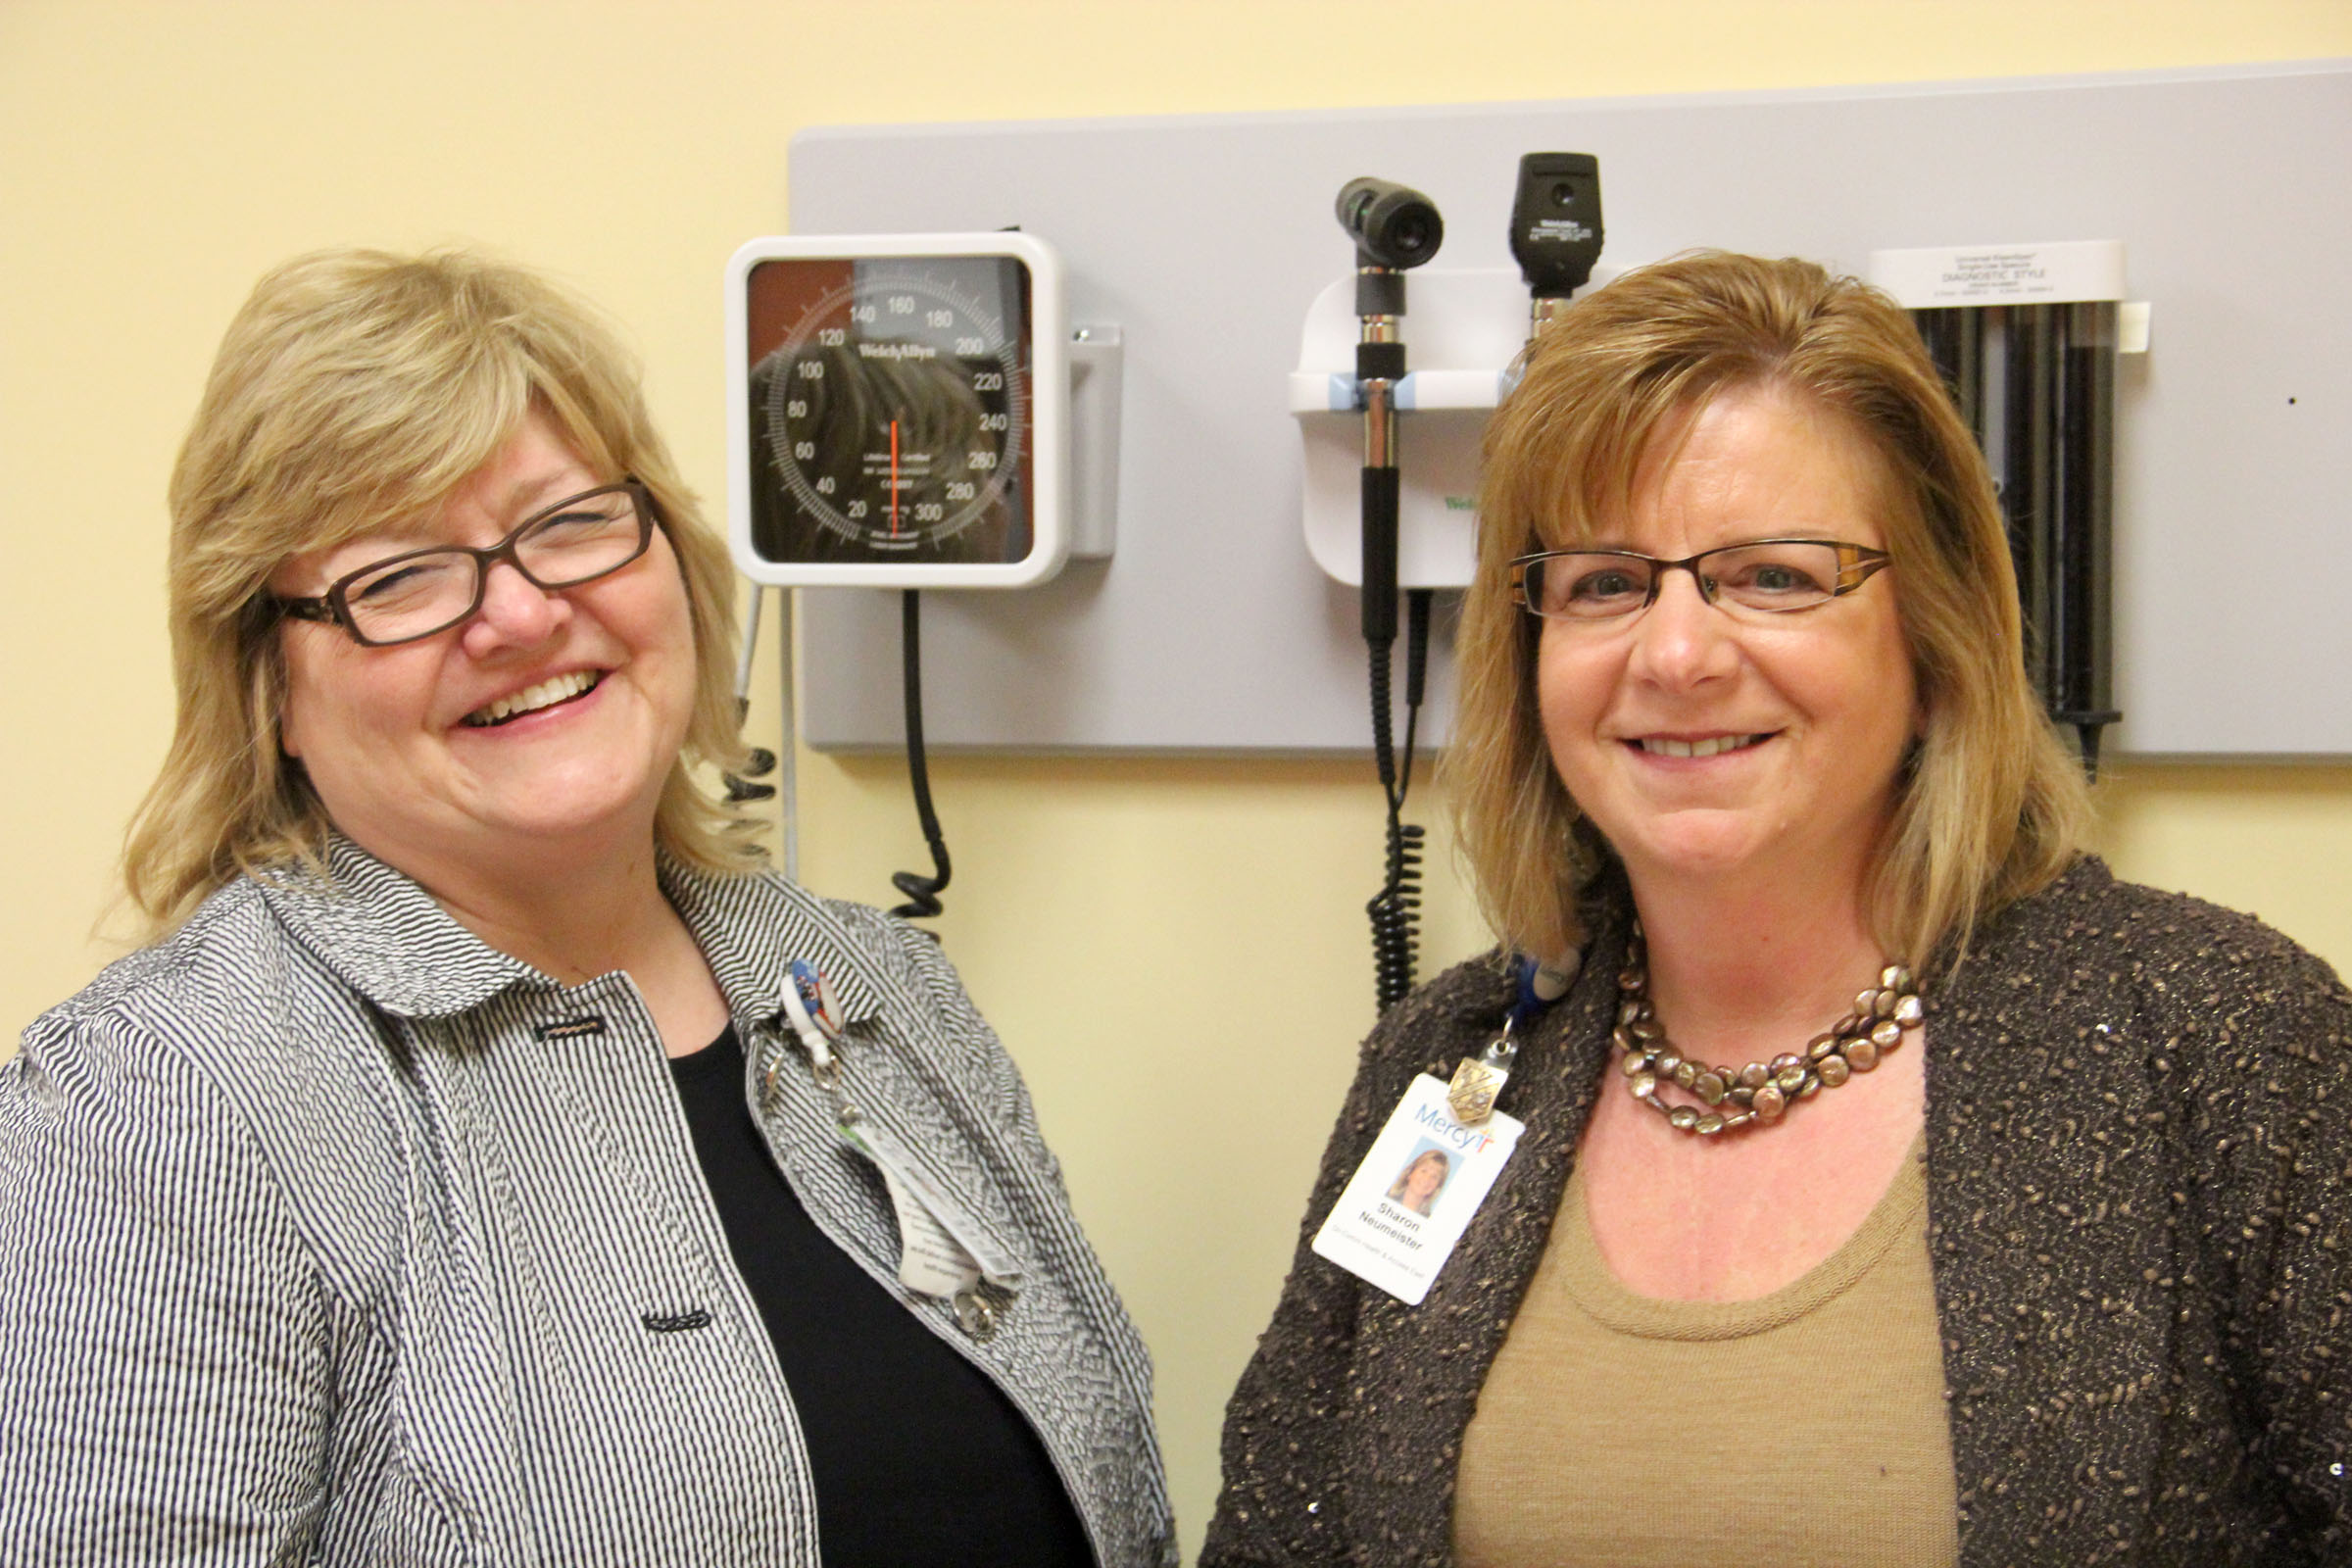 Nurse Practitioner Kathy Woods (left) and Sharron Neumeister, regional director of community health for Mercy (right), stand in an exam room in the health clinic at Roosevelt High School.